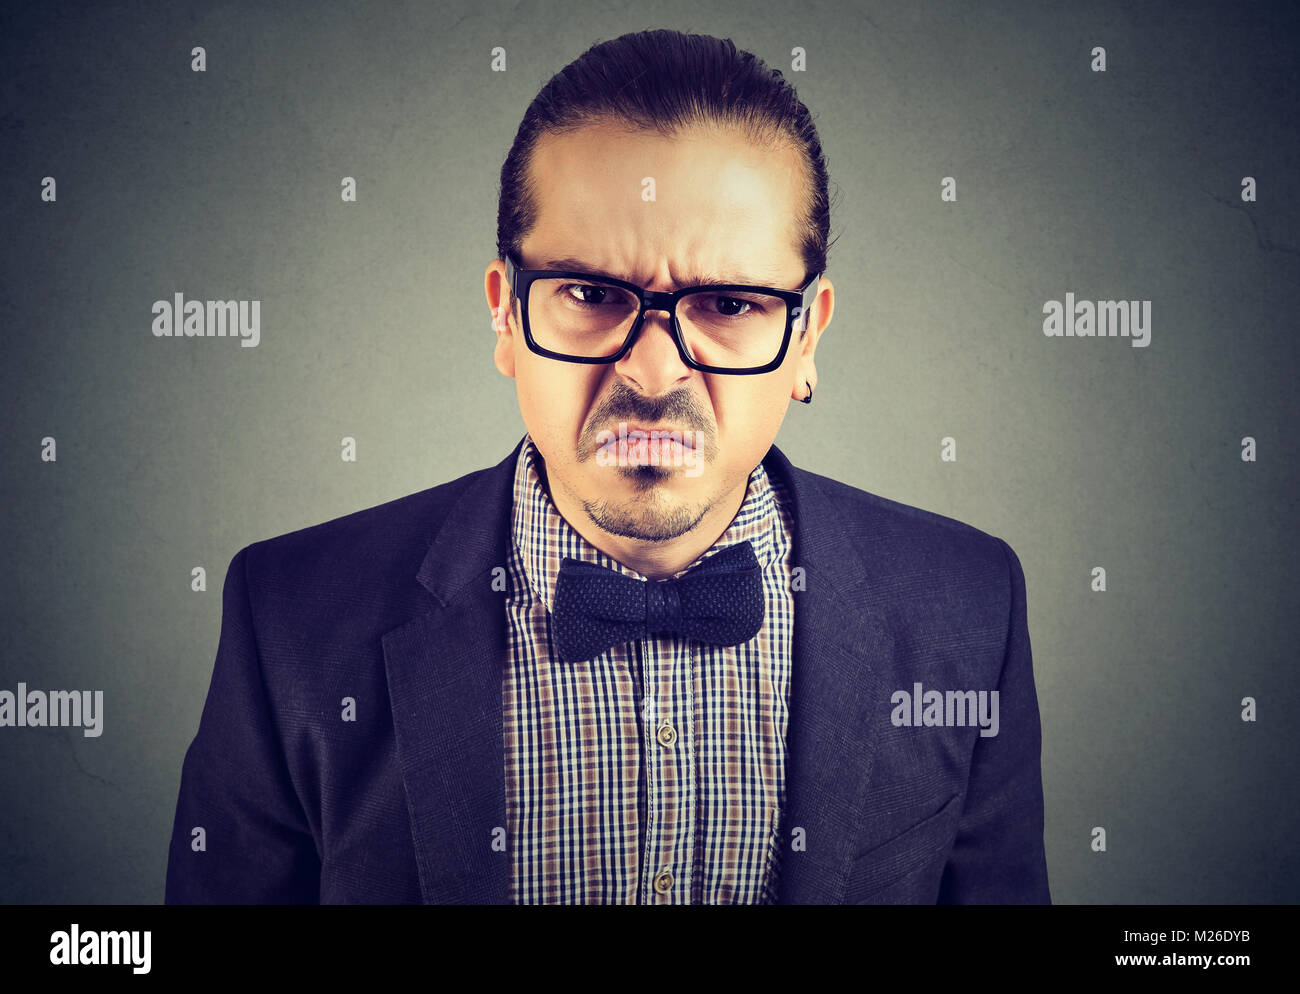 Portrait of young man looking dissatisfied at camera with grumpy facial expression. - Stock Image